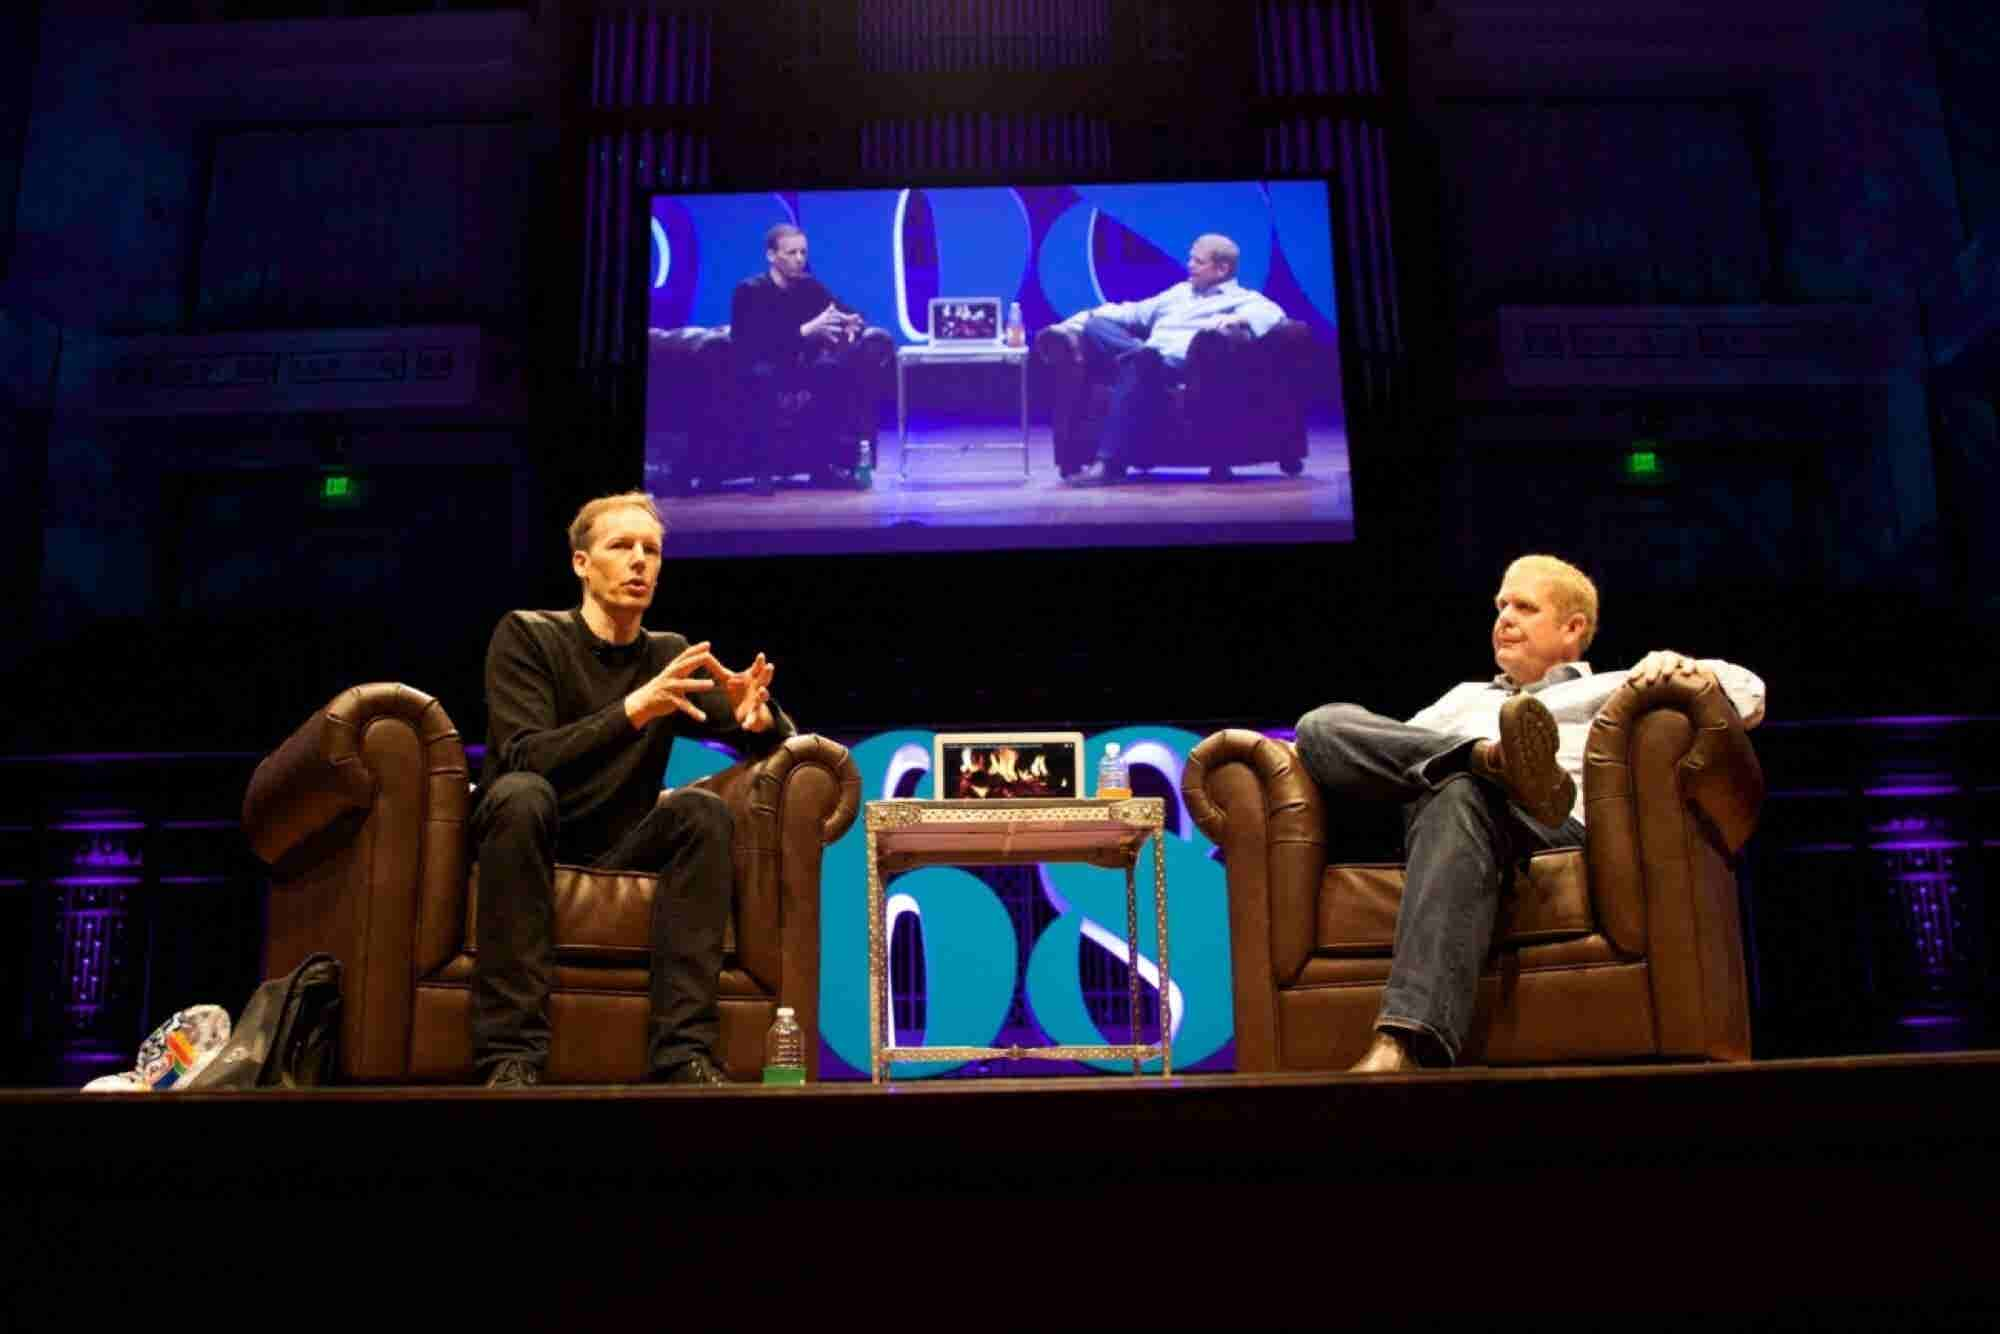 A Terrifying Public Speaking Moment Taught the Co-Founder of Square to...